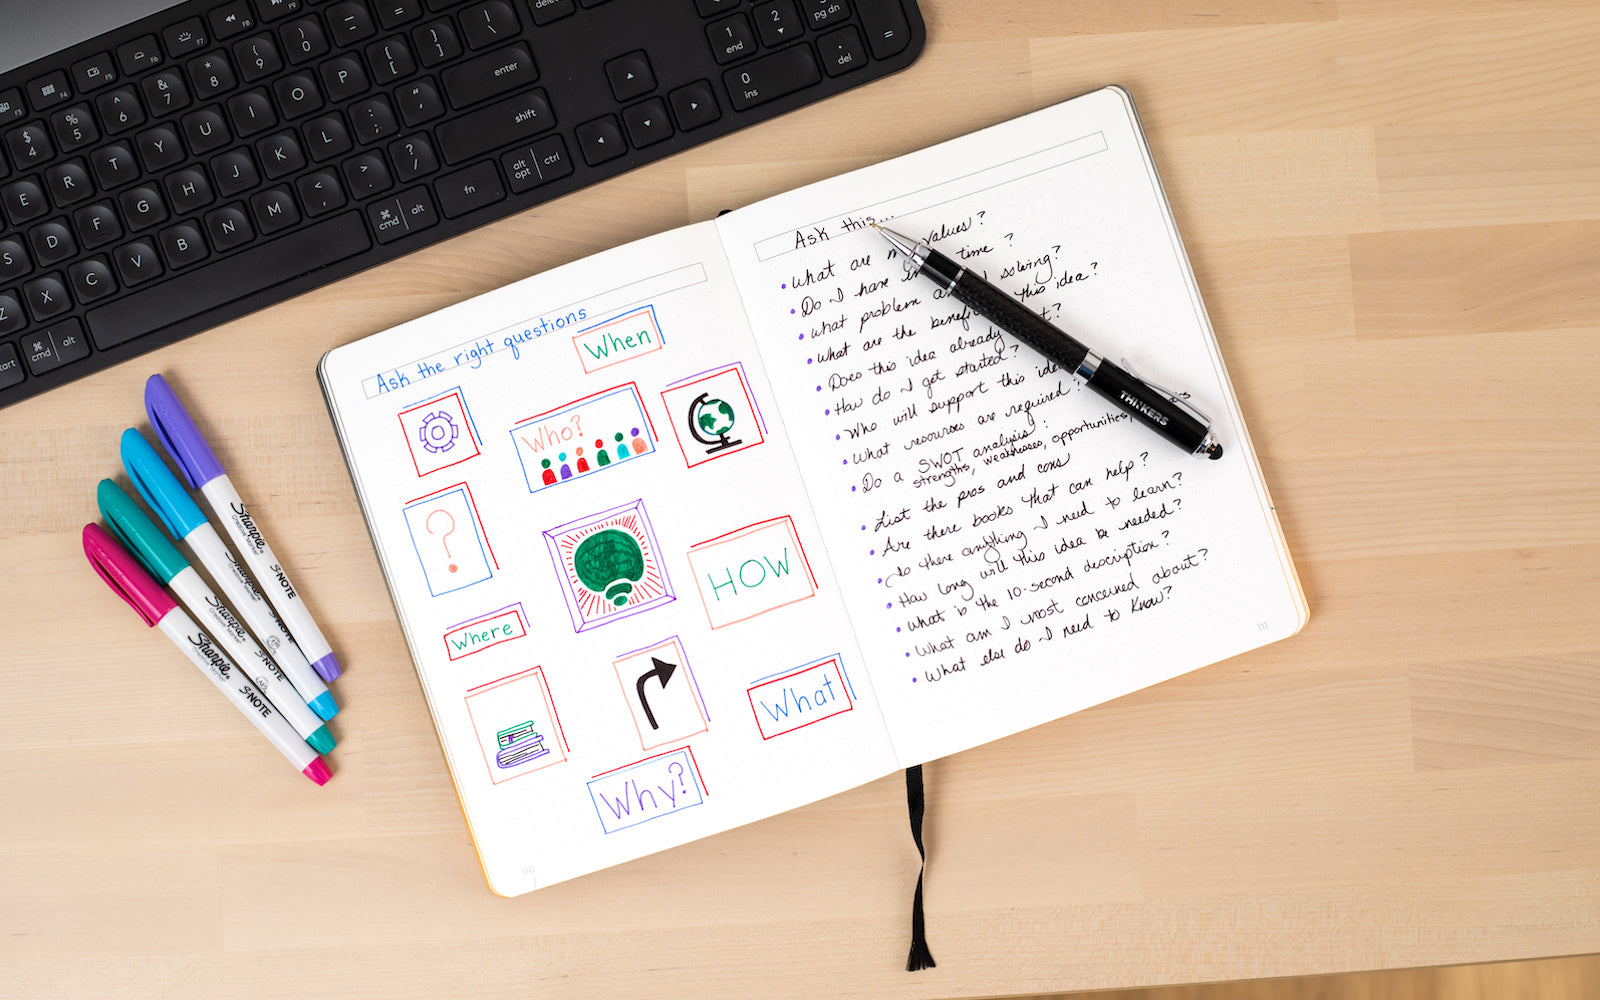 If you love to Bullet Journal, then the THINKERS Notebook is a great solution. Combining a premium journal with an intuitive app, the THINKERS Notebook makes it easy to capture and organize your ideas using an intuitive app.